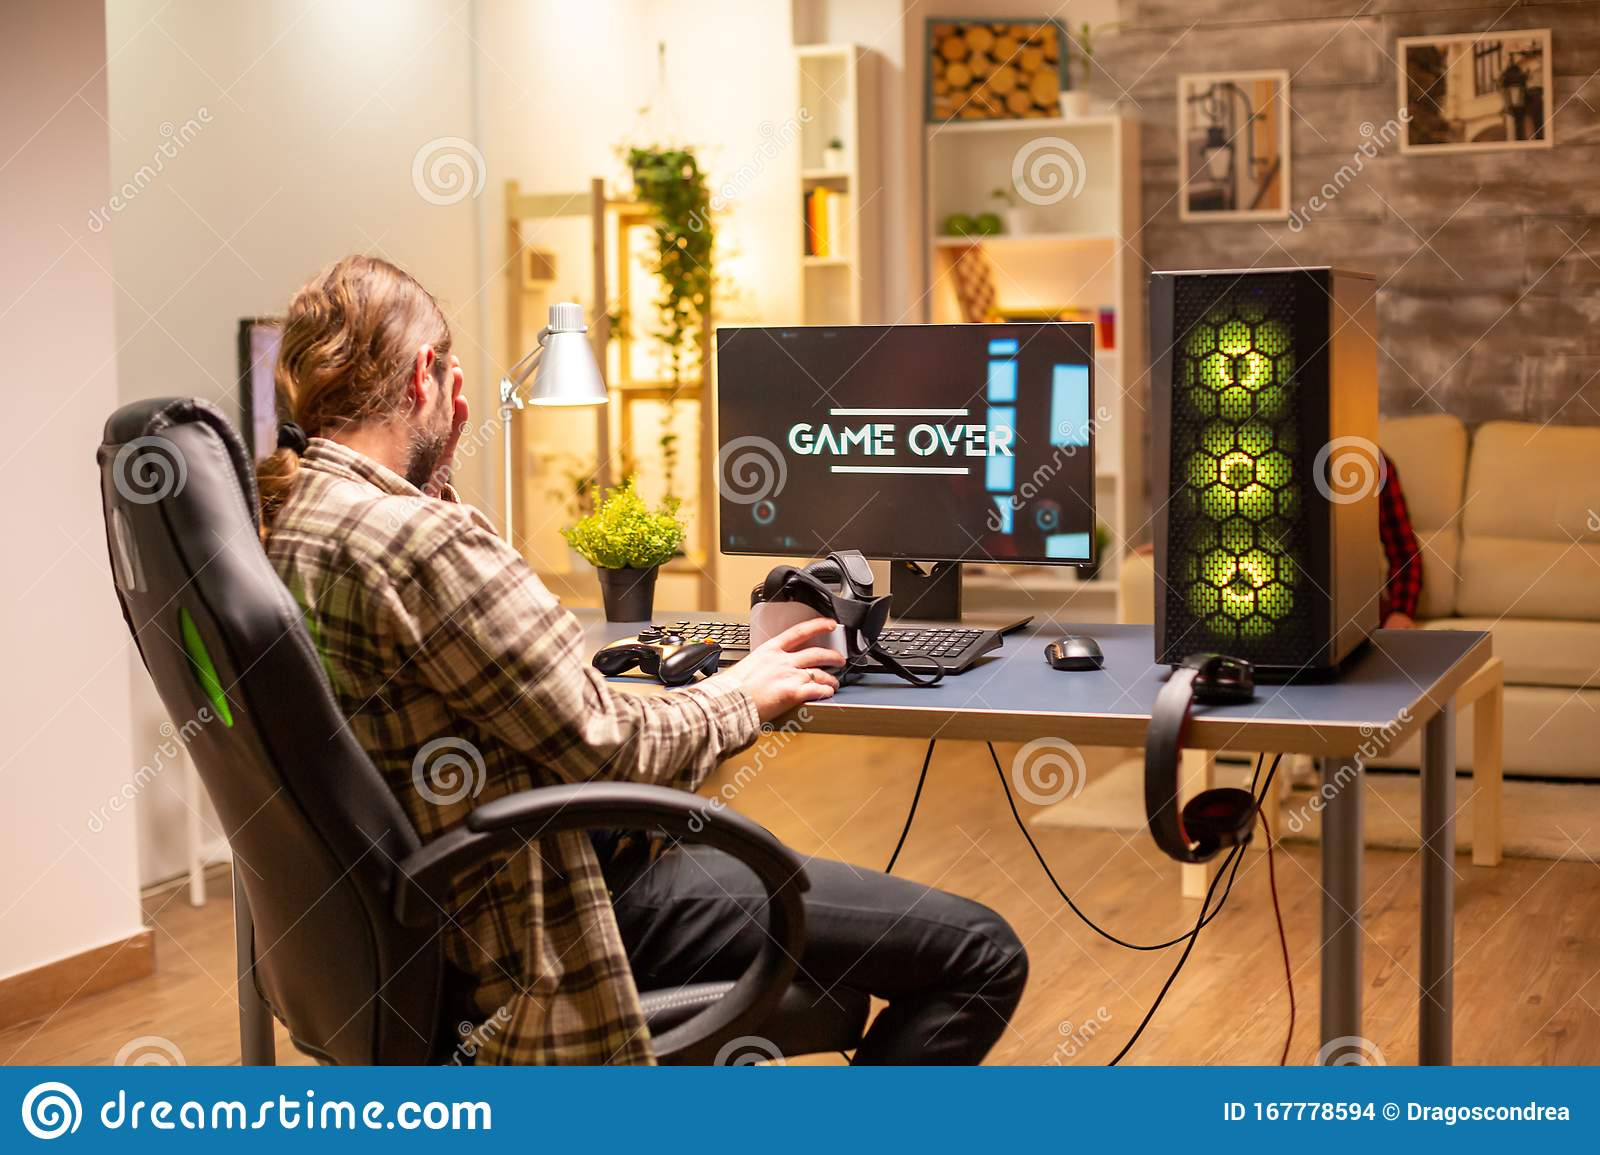 Man On His Powerful Pc Computer In The Living Room Late At Night Loosing A Game Stock Photo Image Of Esport Headphones 167778594